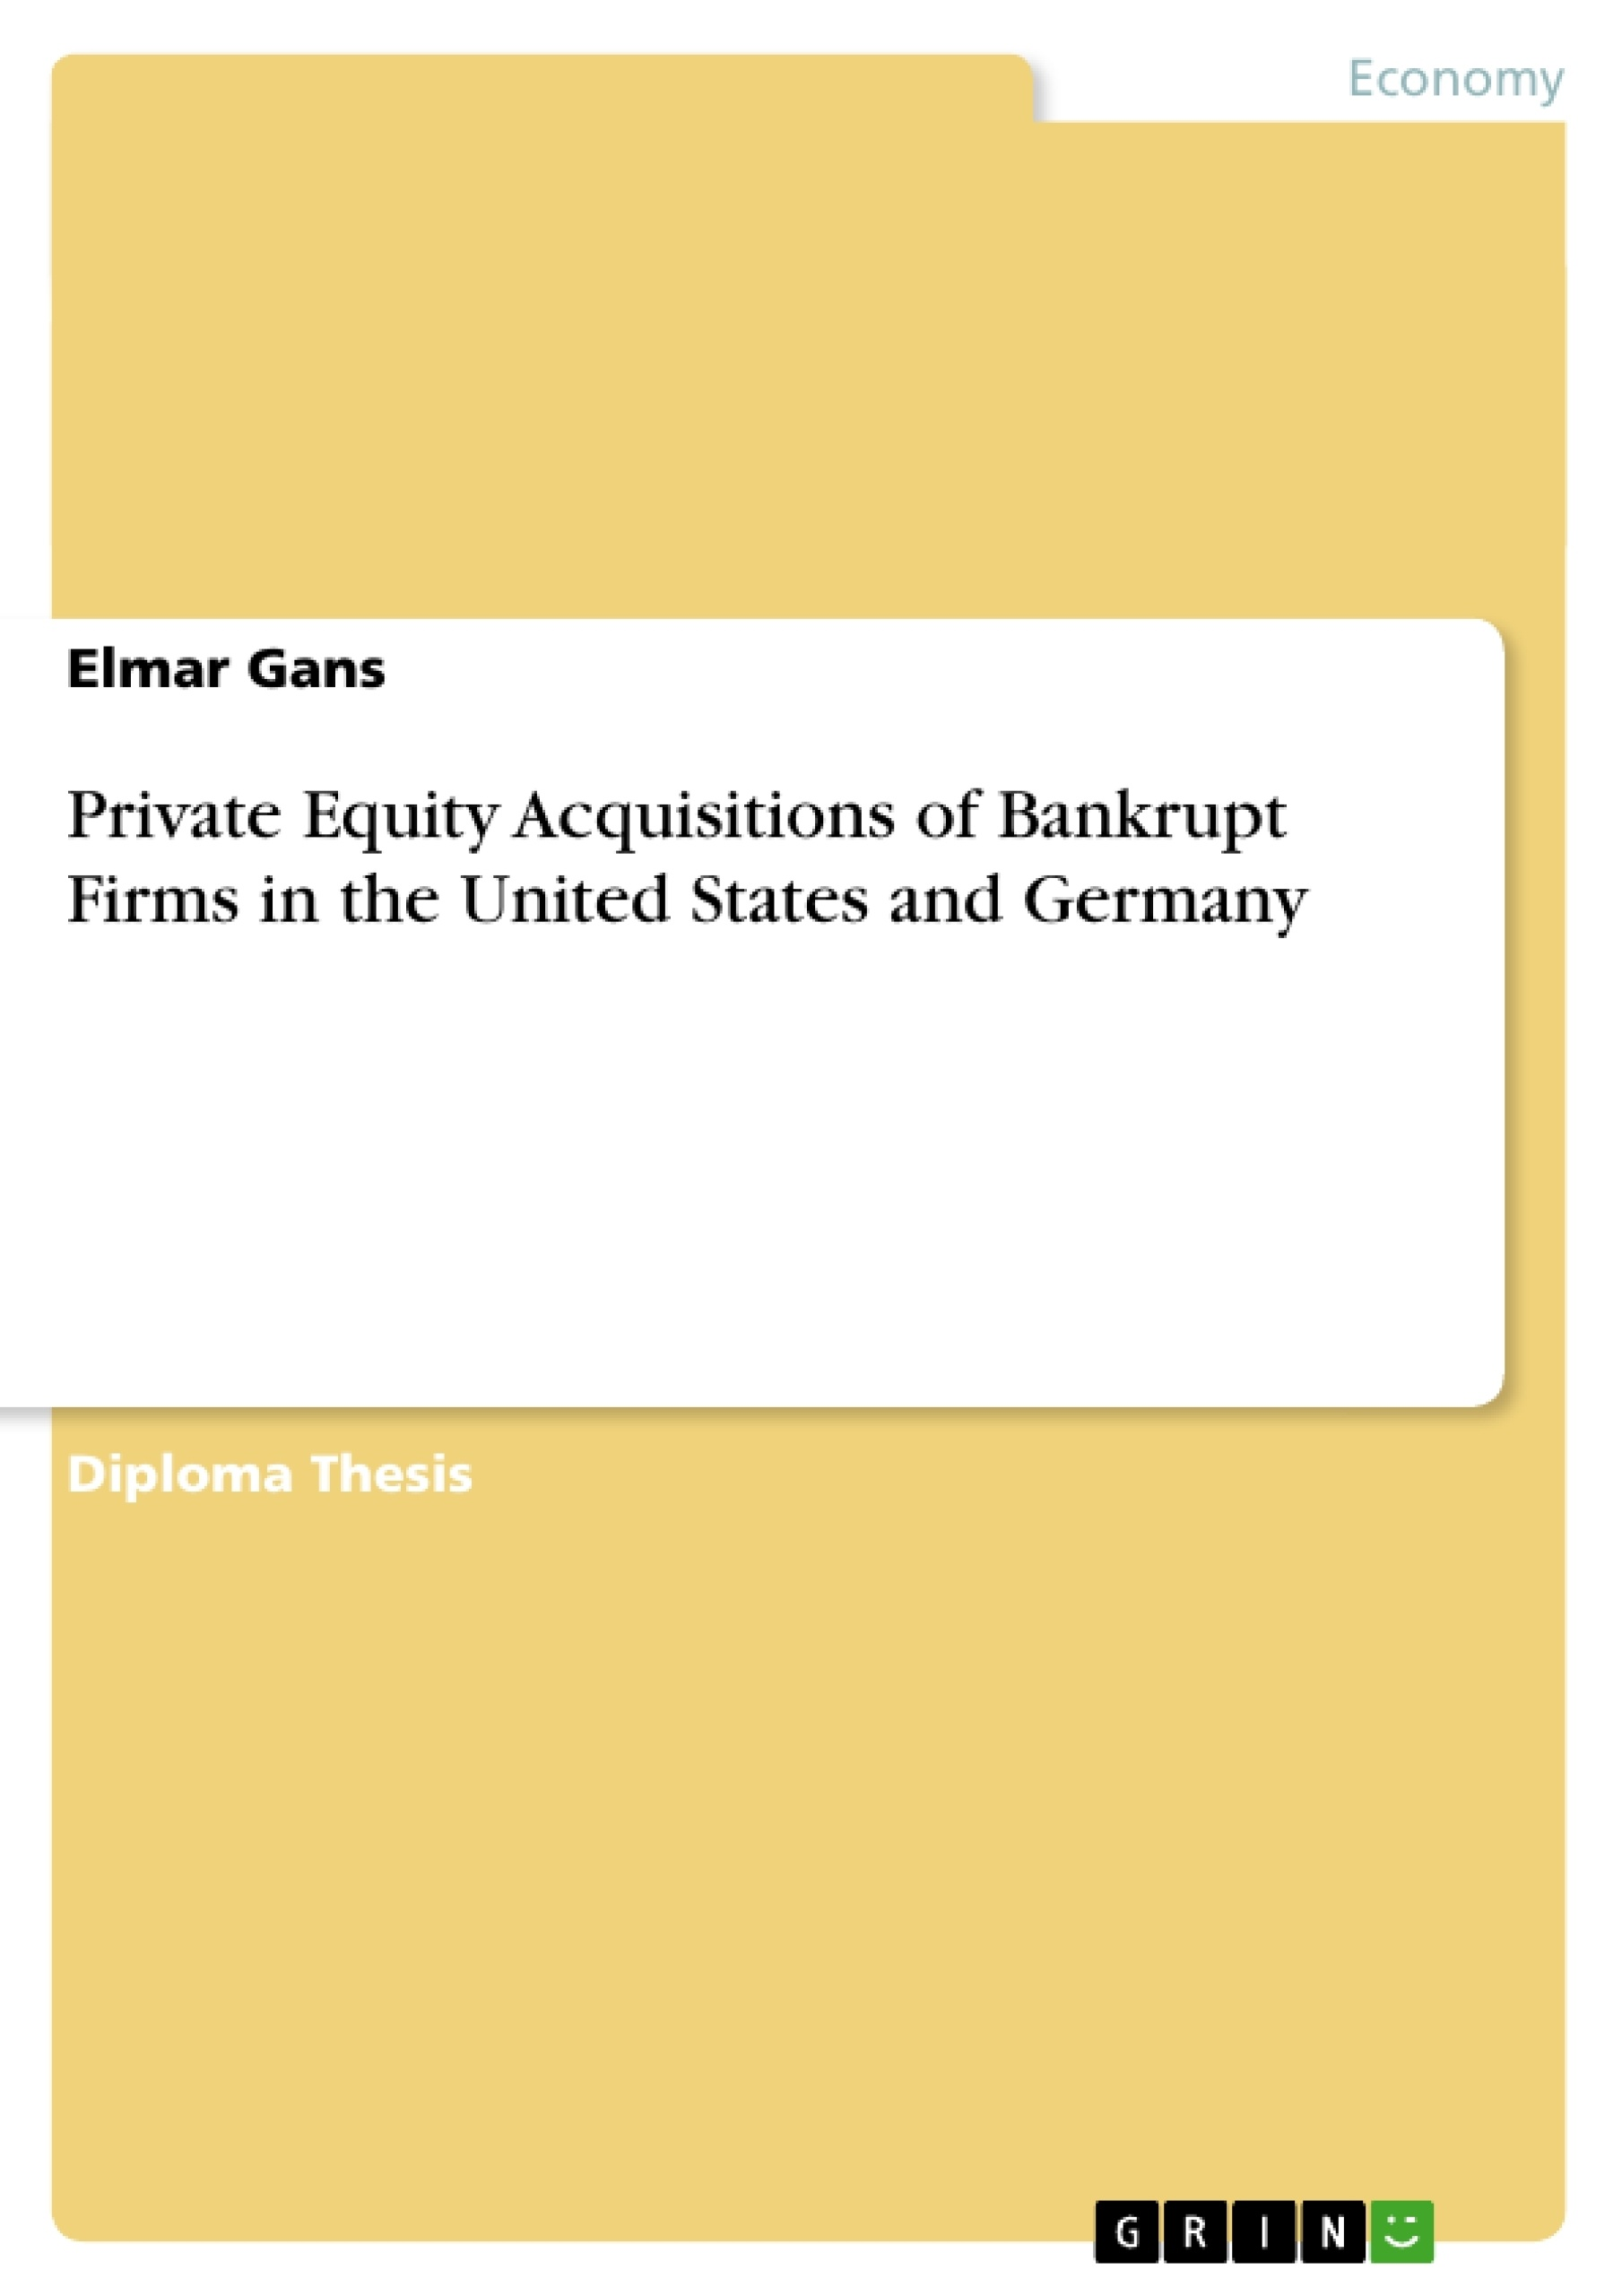 Title: Private Equity Acquisitions of Bankrupt Firms in the United States and Germany